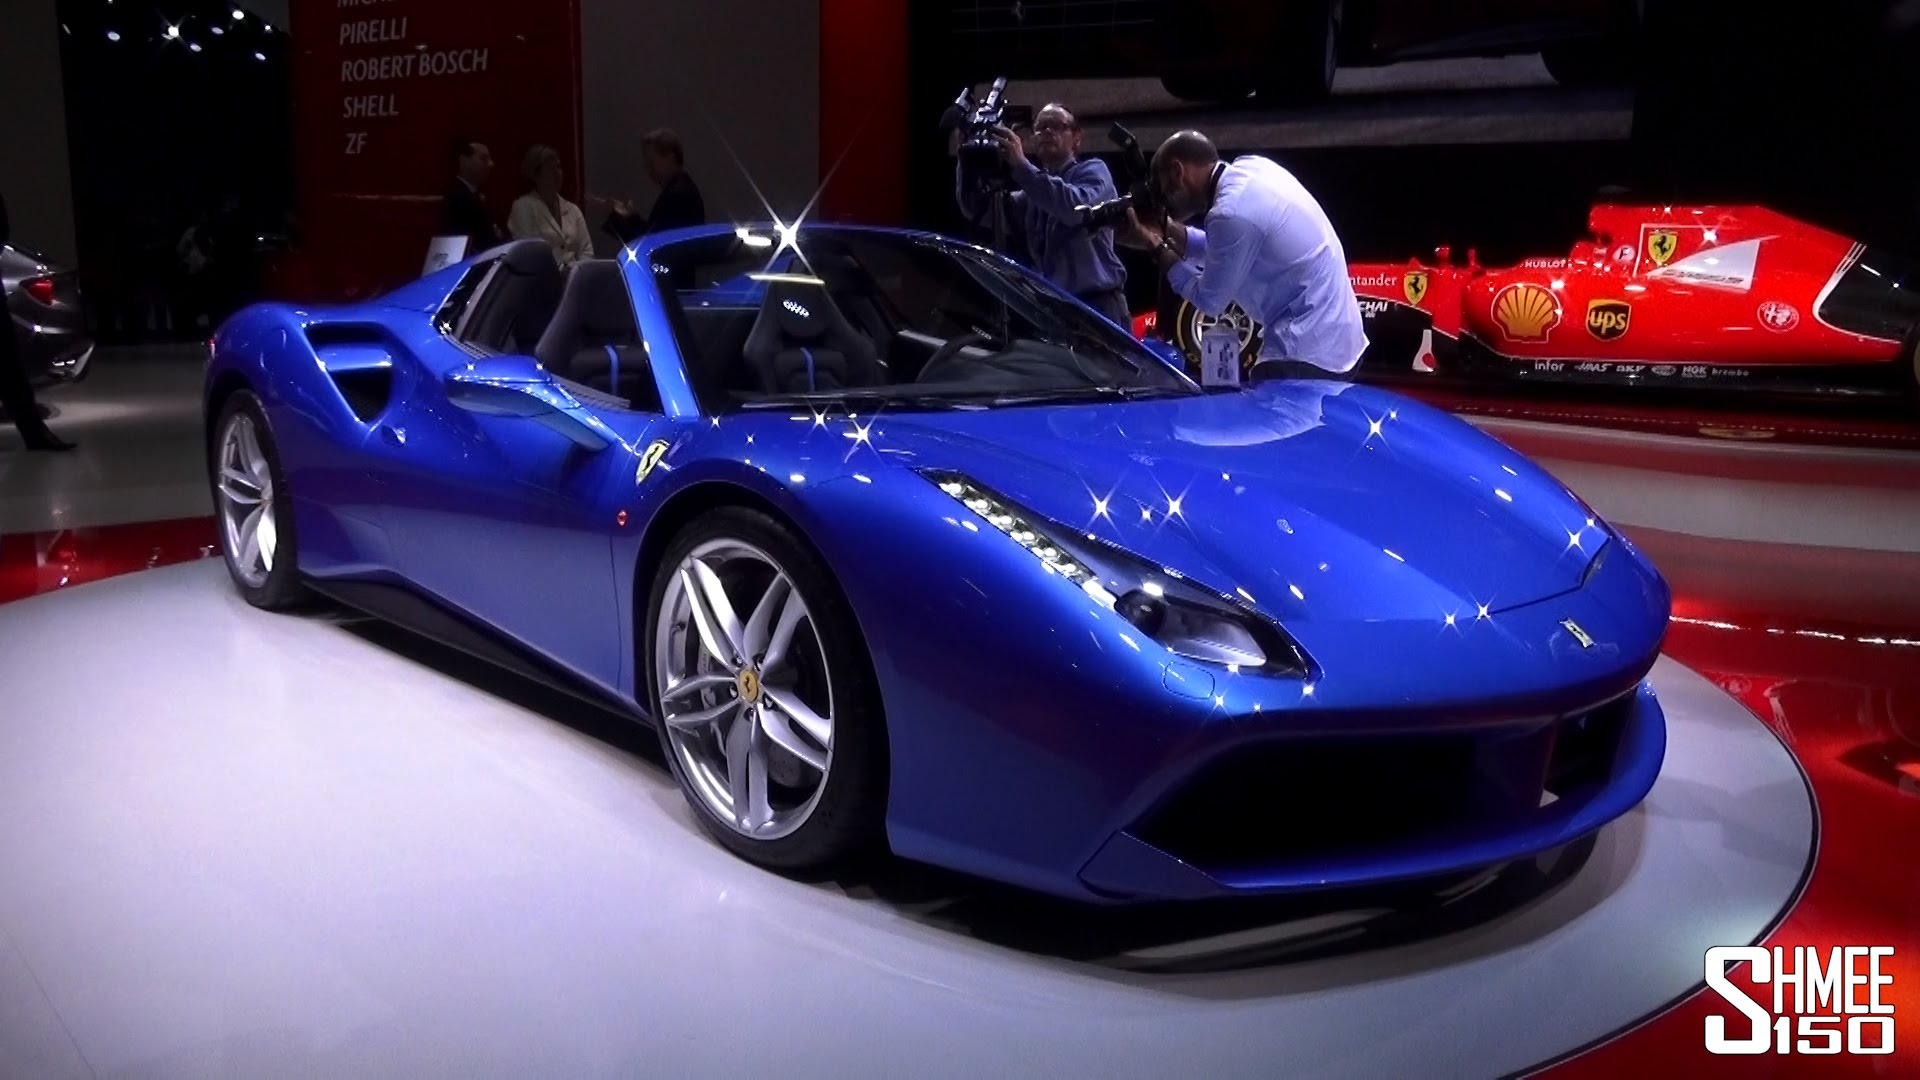 The Blue Cars of the Frankfurt Motorshow 2015 - YouTube